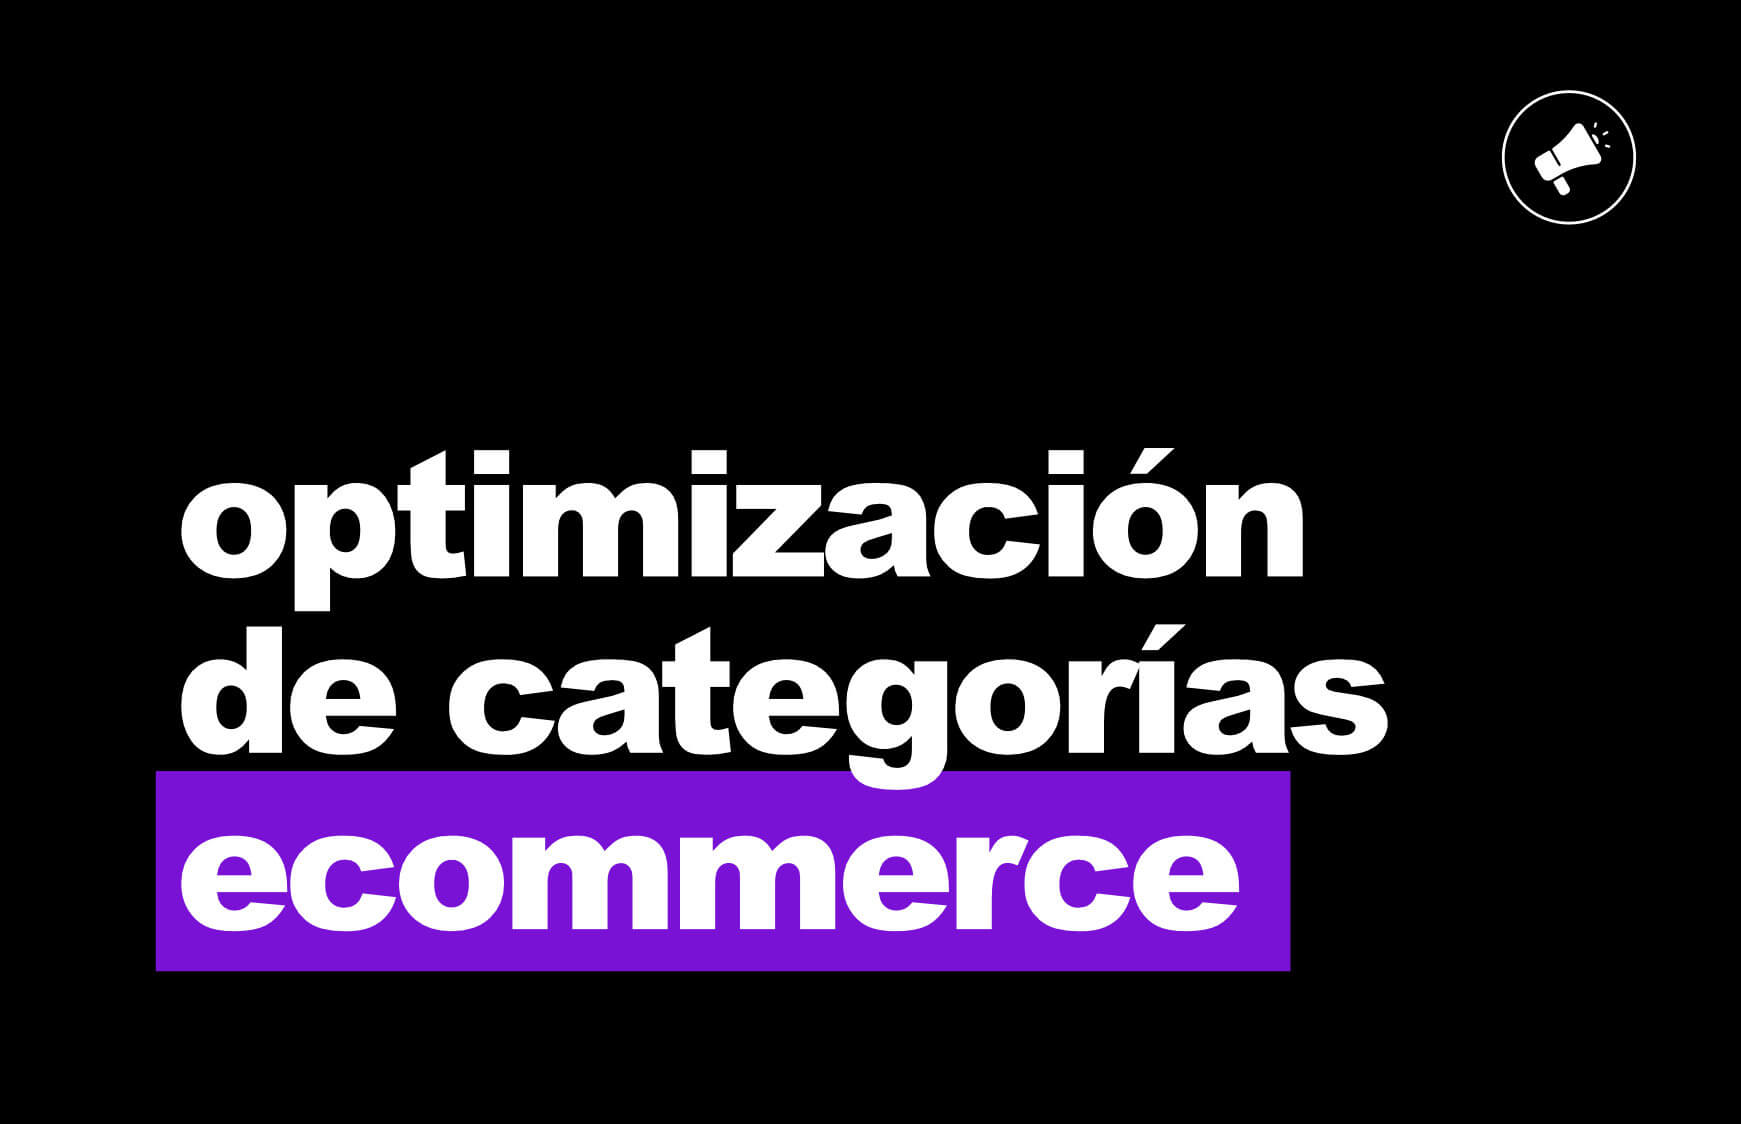 optimizacion categorias tienda online ecommerce